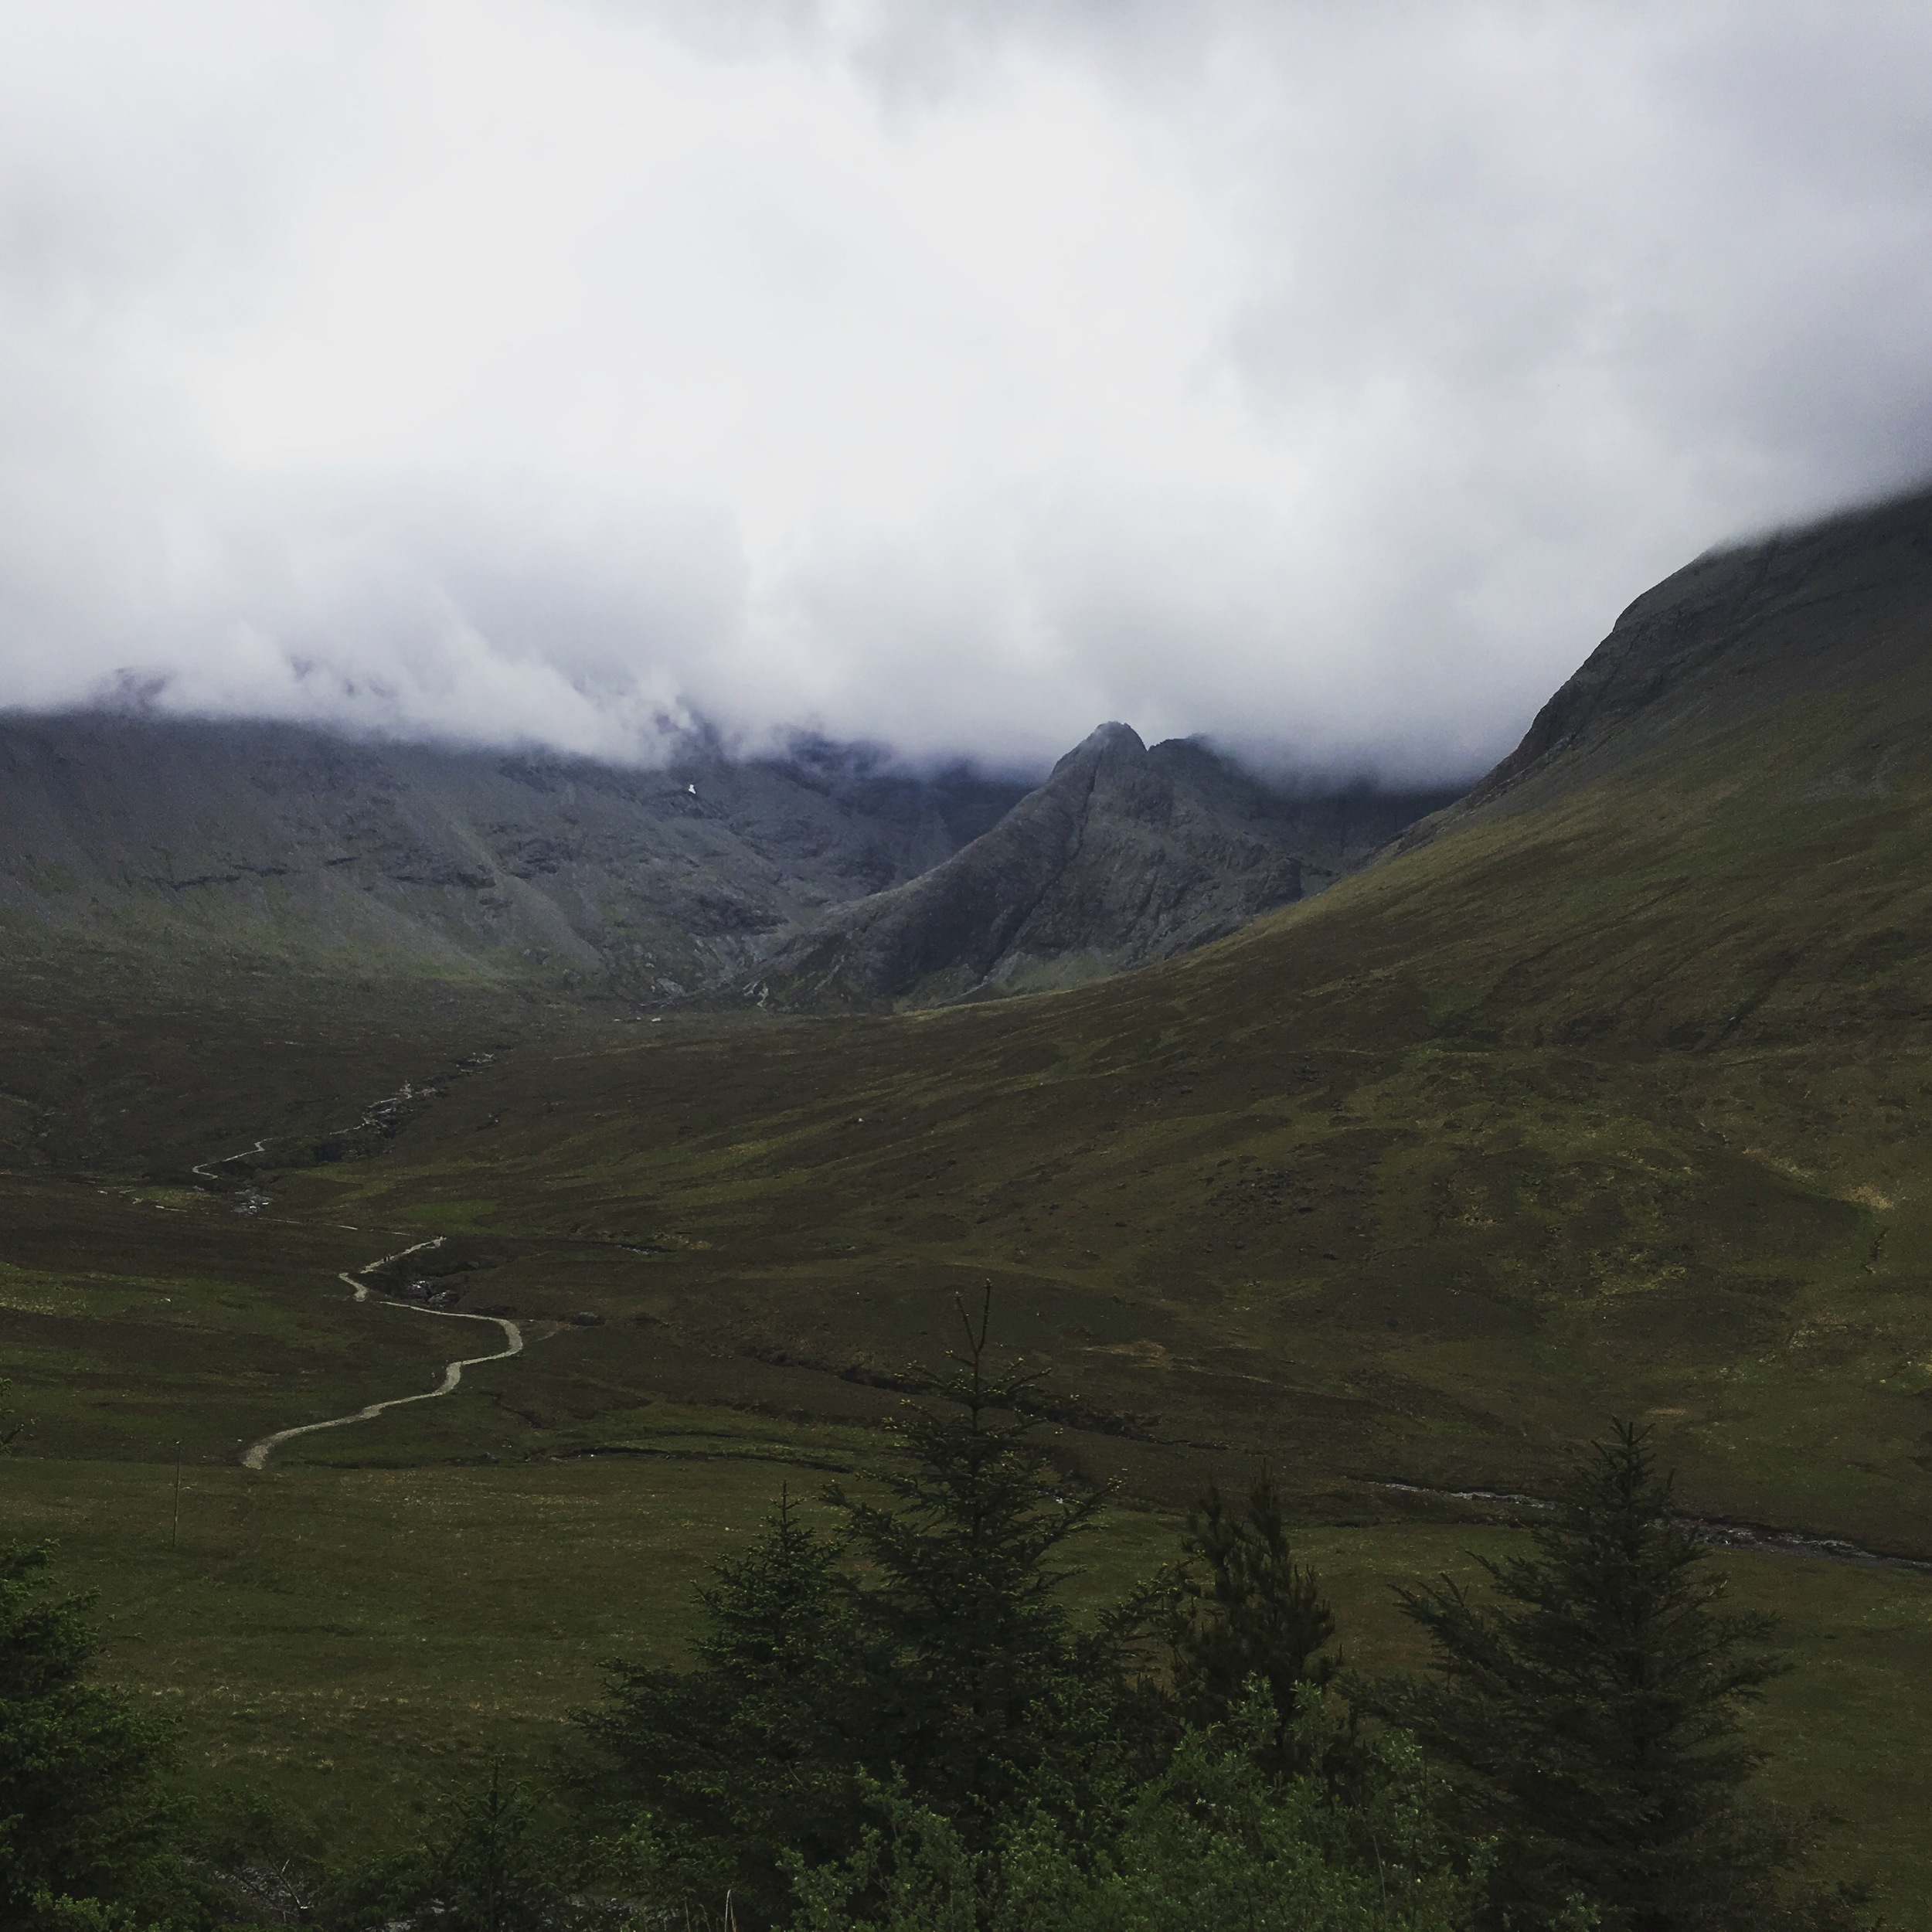 The fairy pools in summary from the road